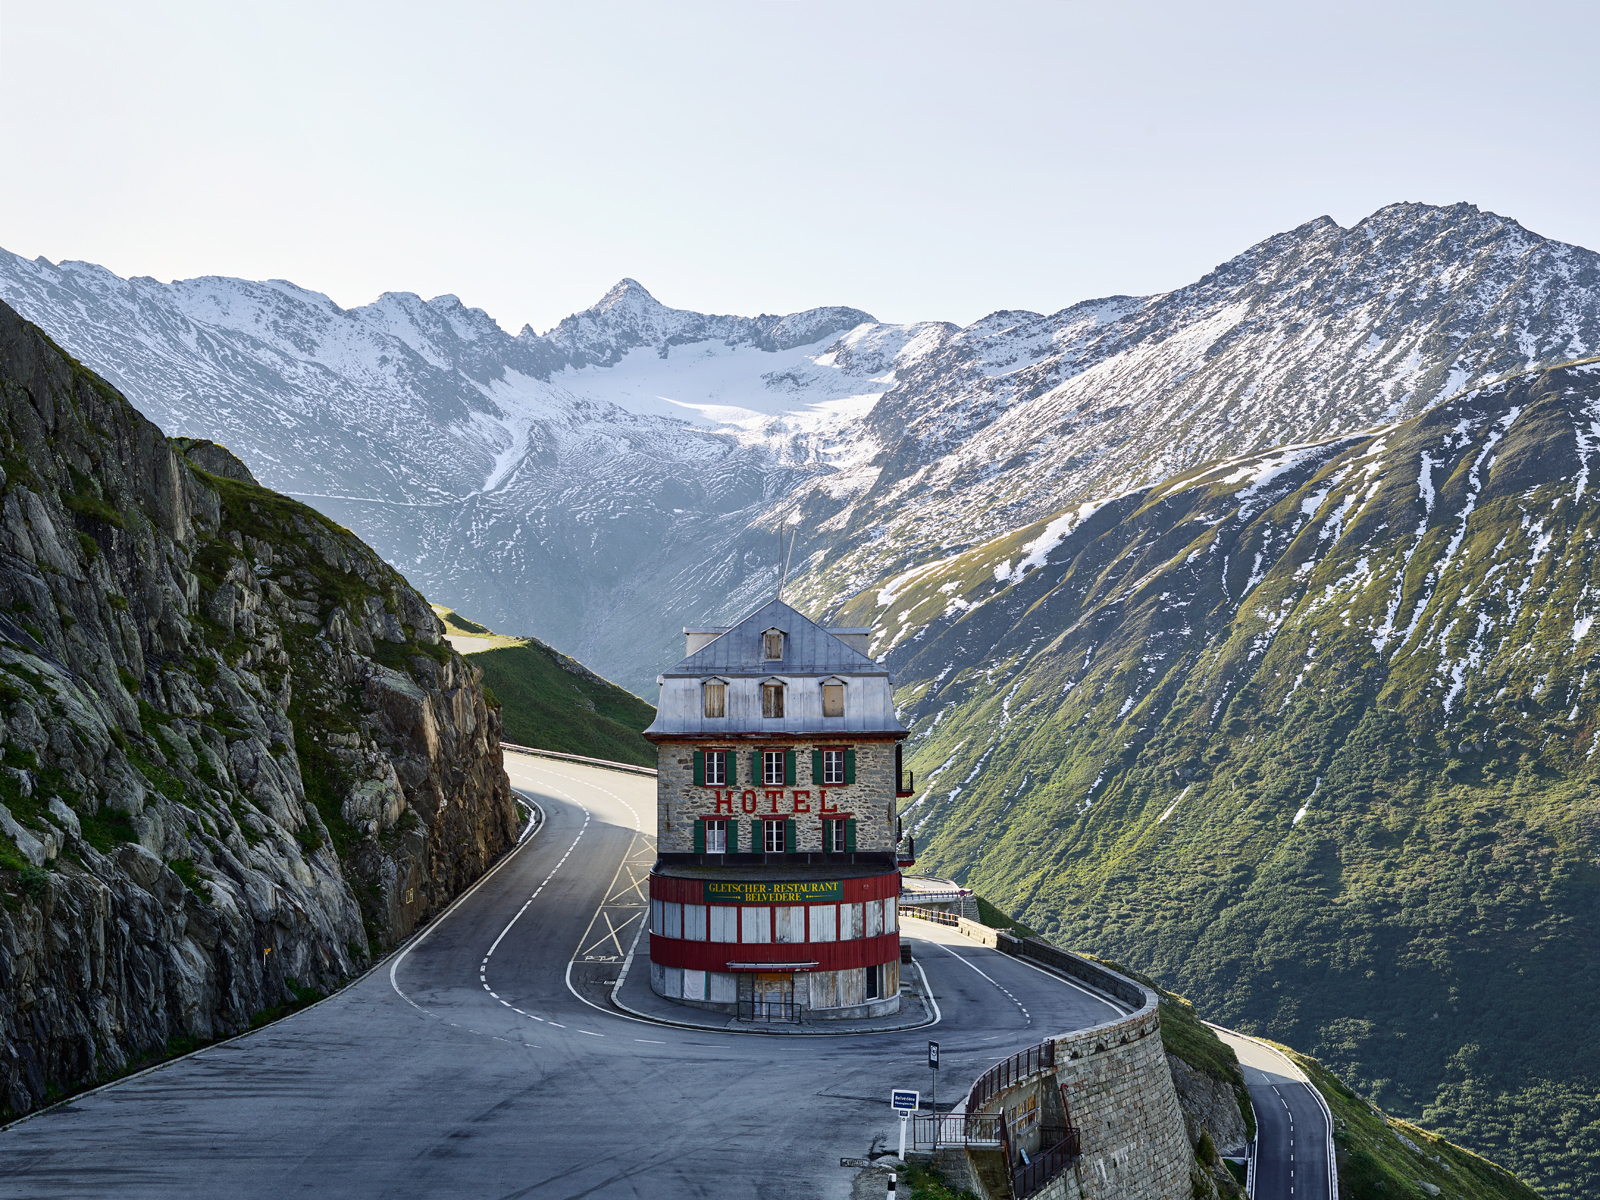 Hotel Belevdere, Furka Pass, Switzerland. Swiss Alps, hairpin, cycling, landscape photography